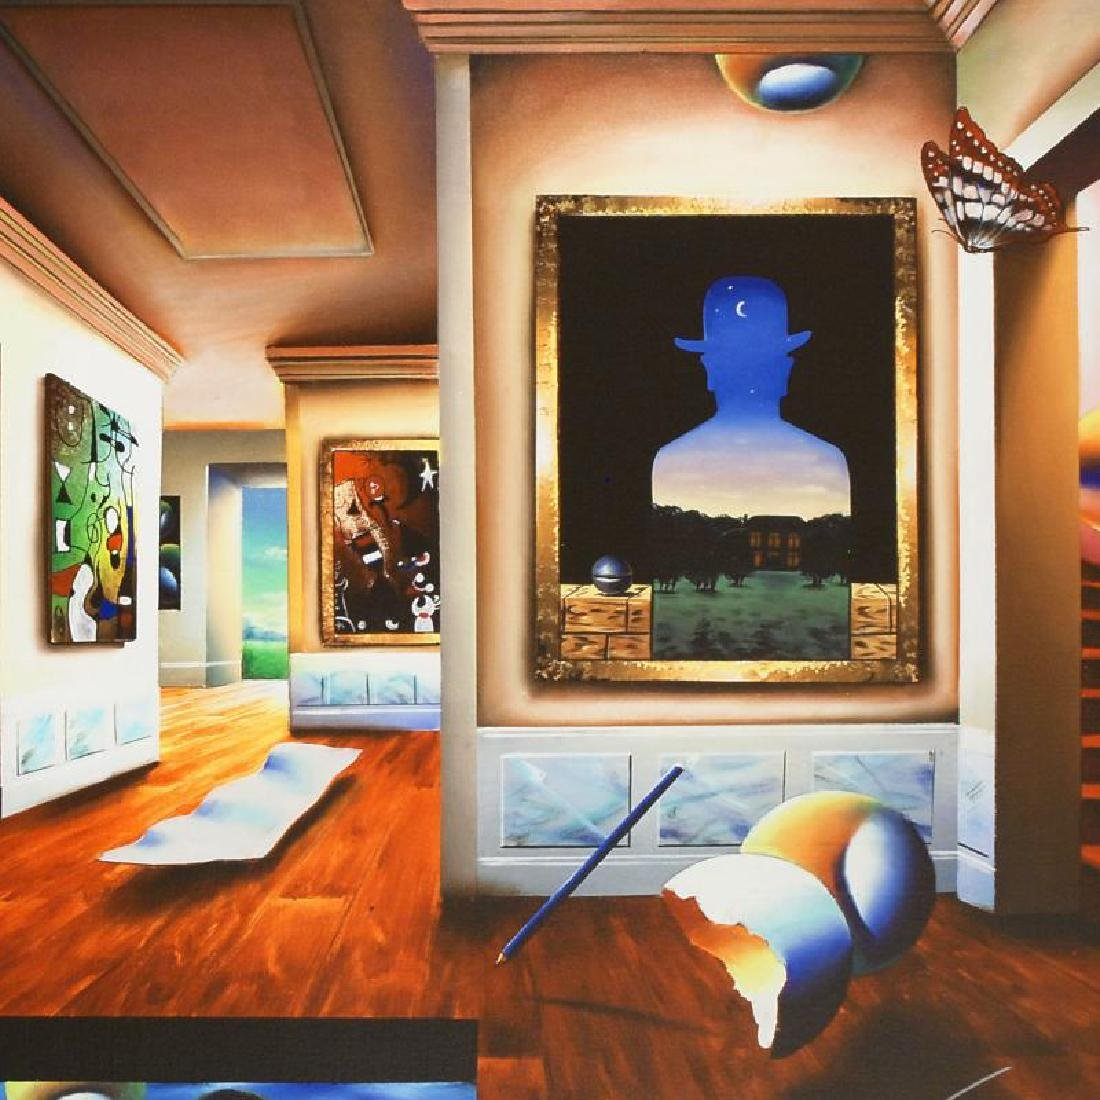 Interior with Magritte by Ferjo - 2